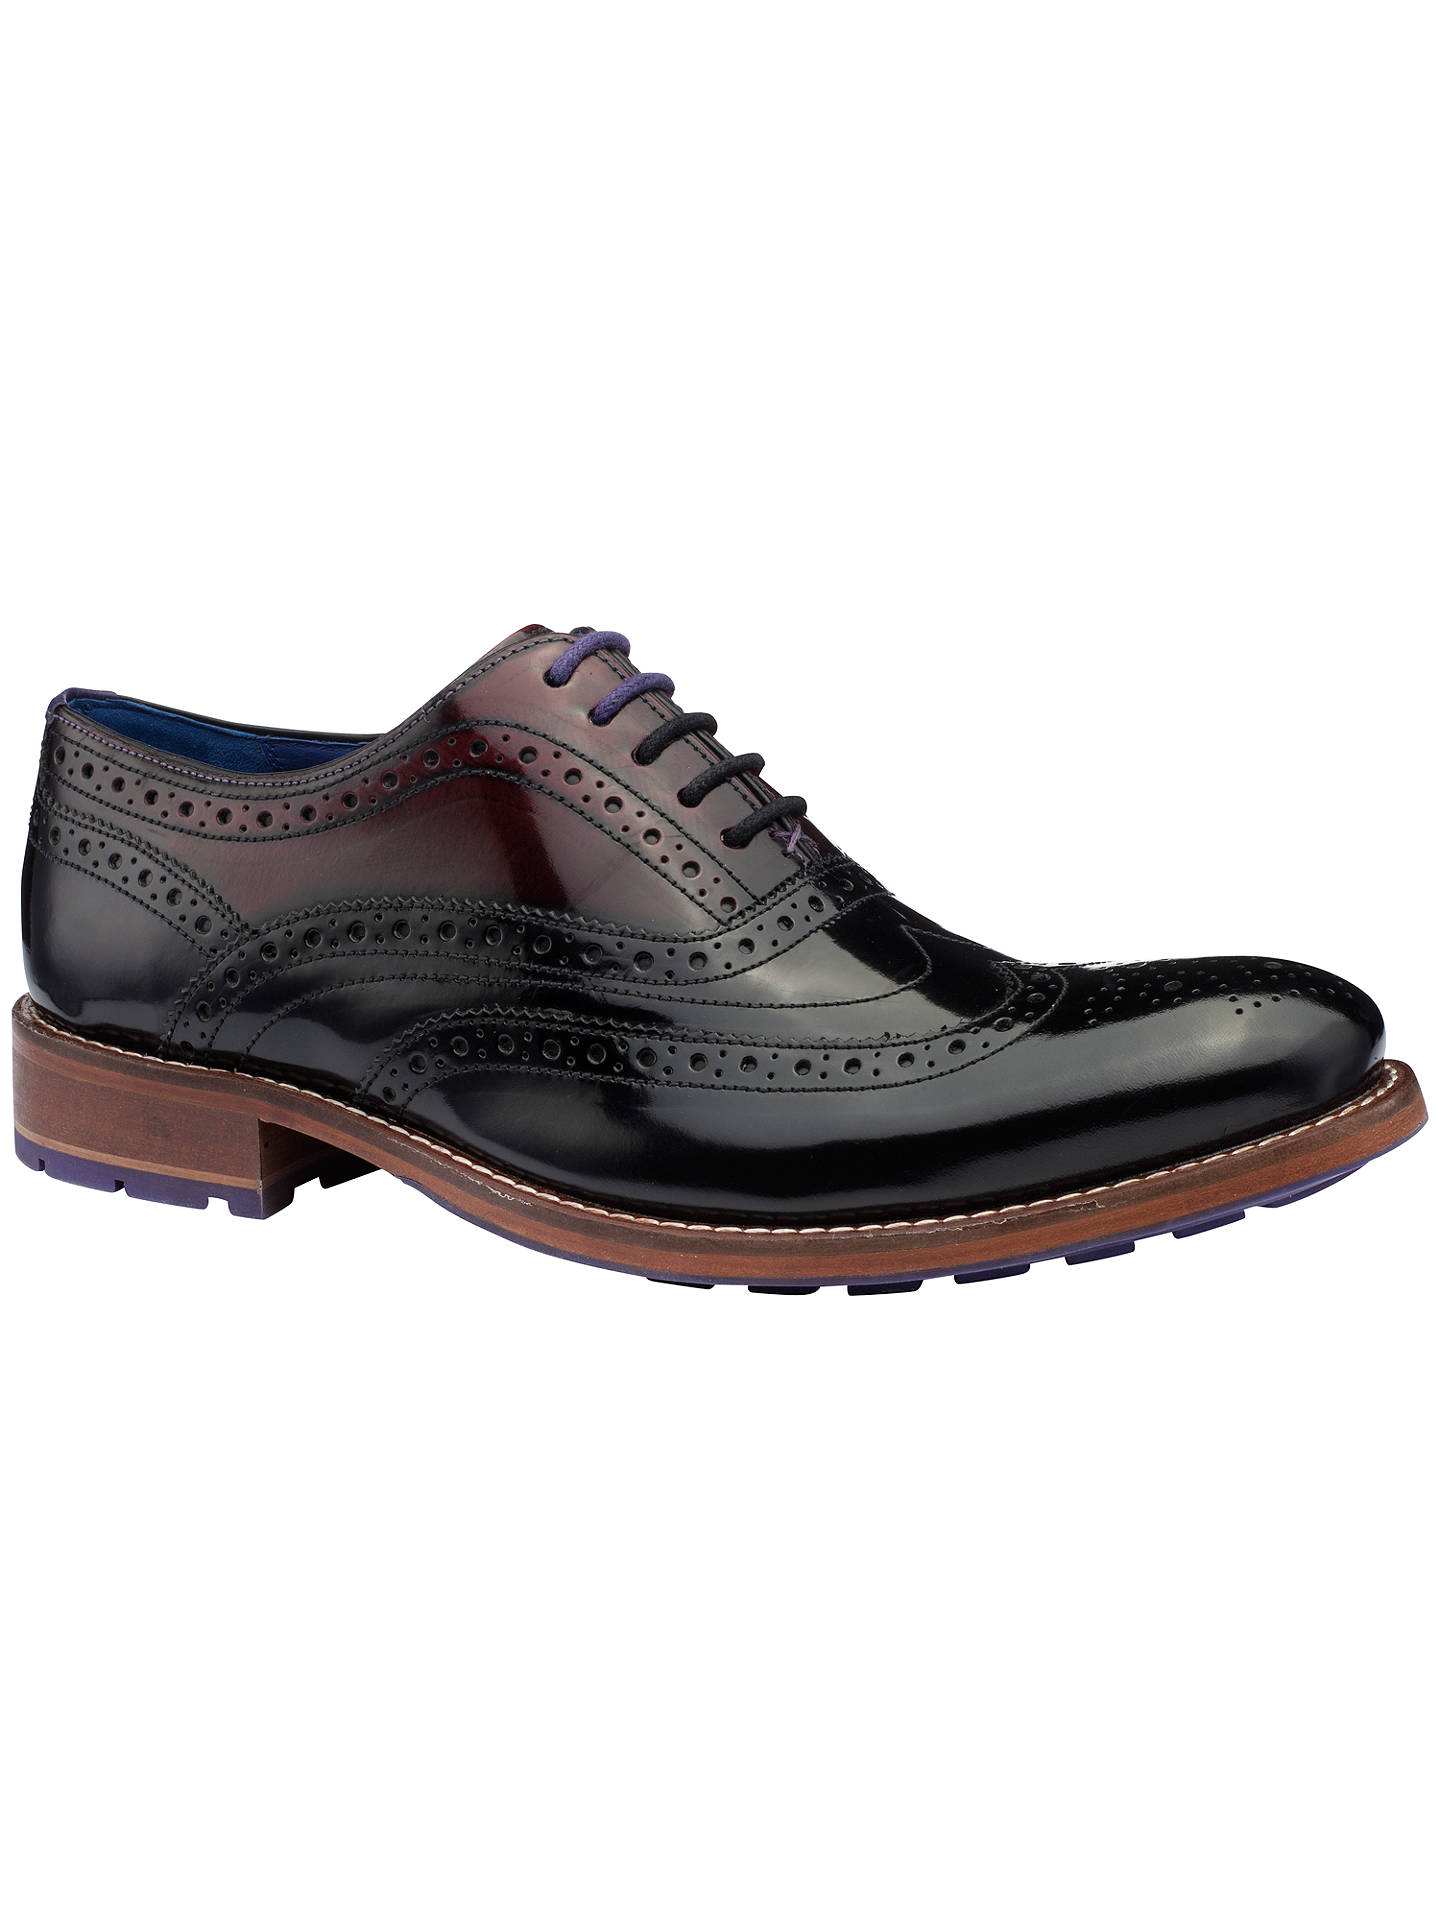 57ce86434 Buy Ted Baker Krelly High Shine Leather Brogues